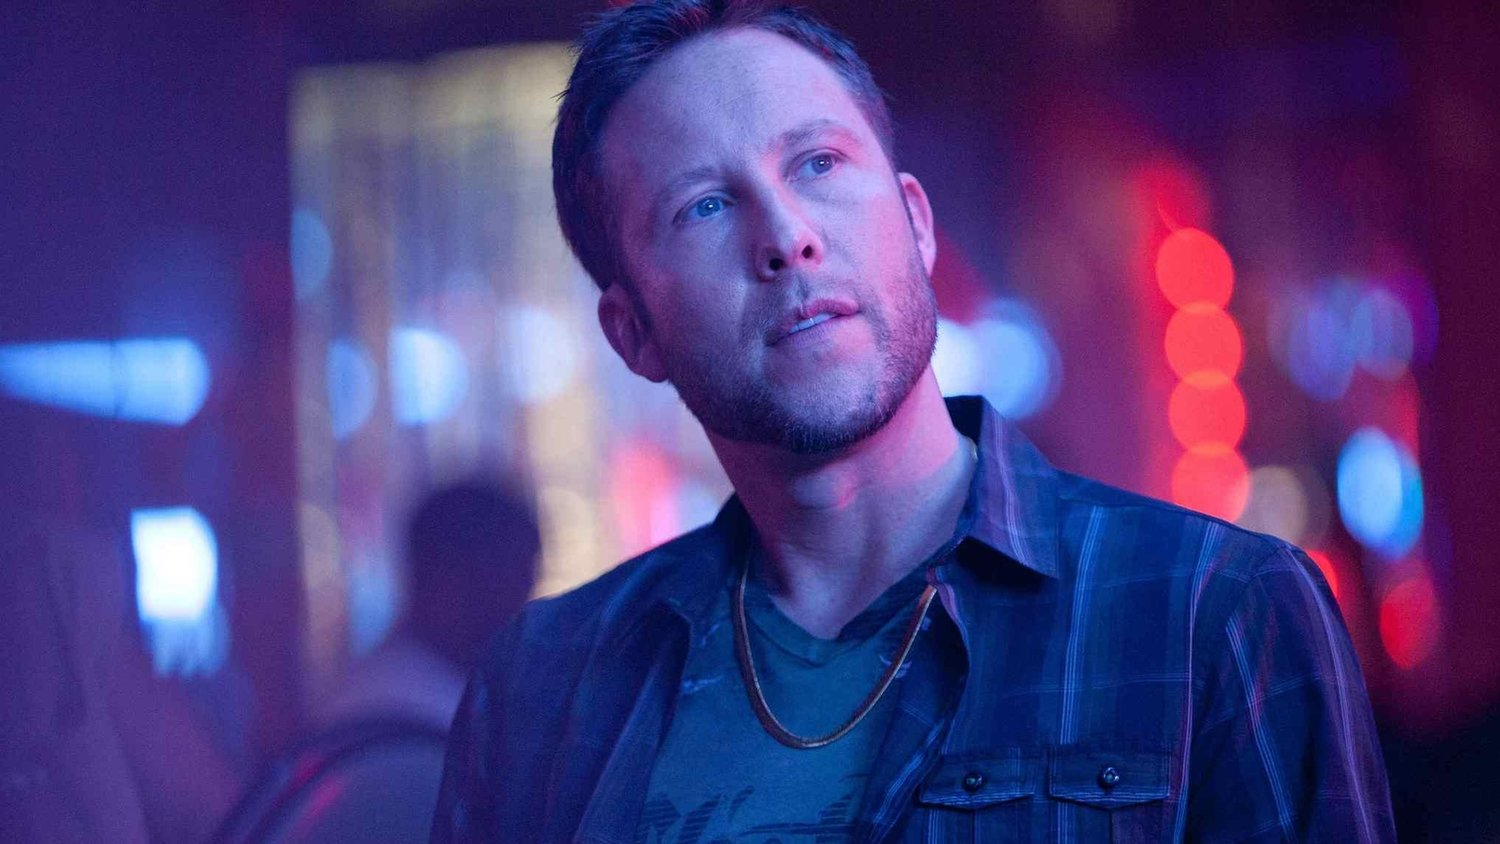 Smallville's Michael Rosenbaum and Sylvester Stallone Play Key Roles in GUARDIANS OF THE GALAXY VOL. 2